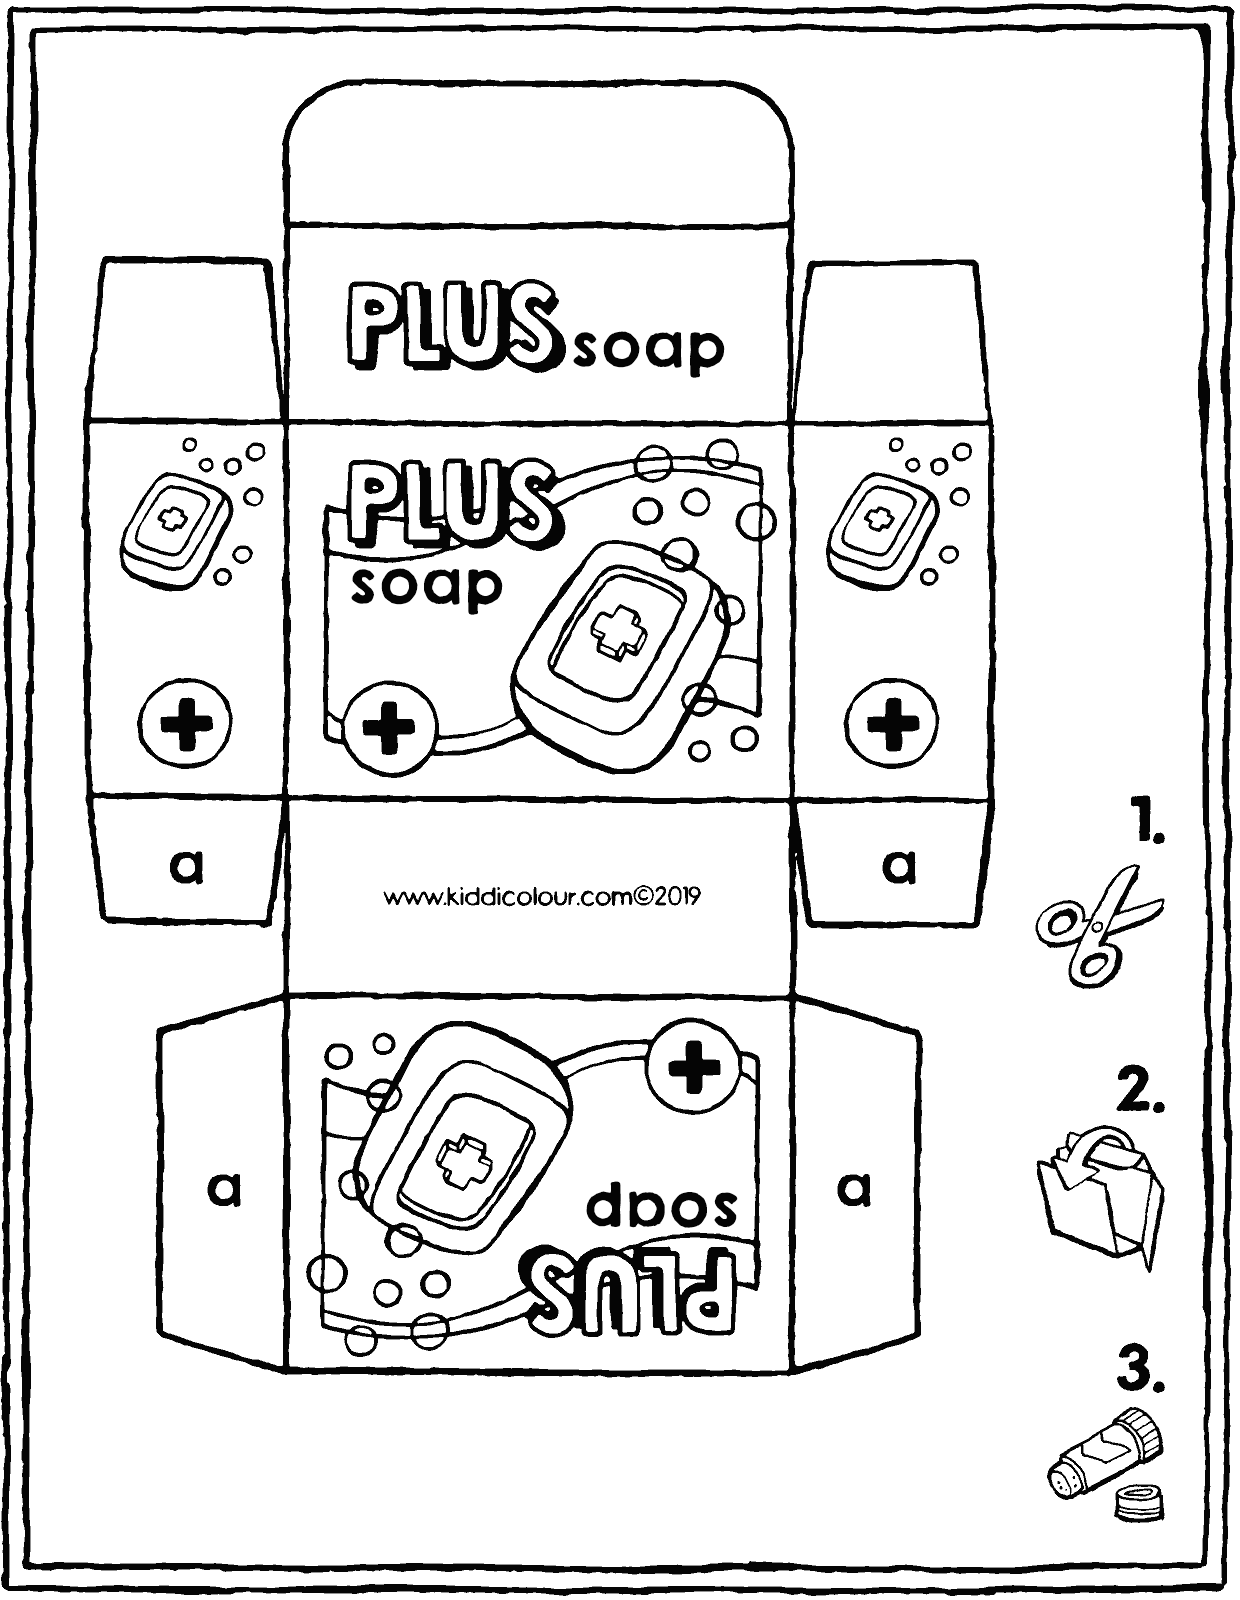 make your own soap packet colouring page drawing picture 01V